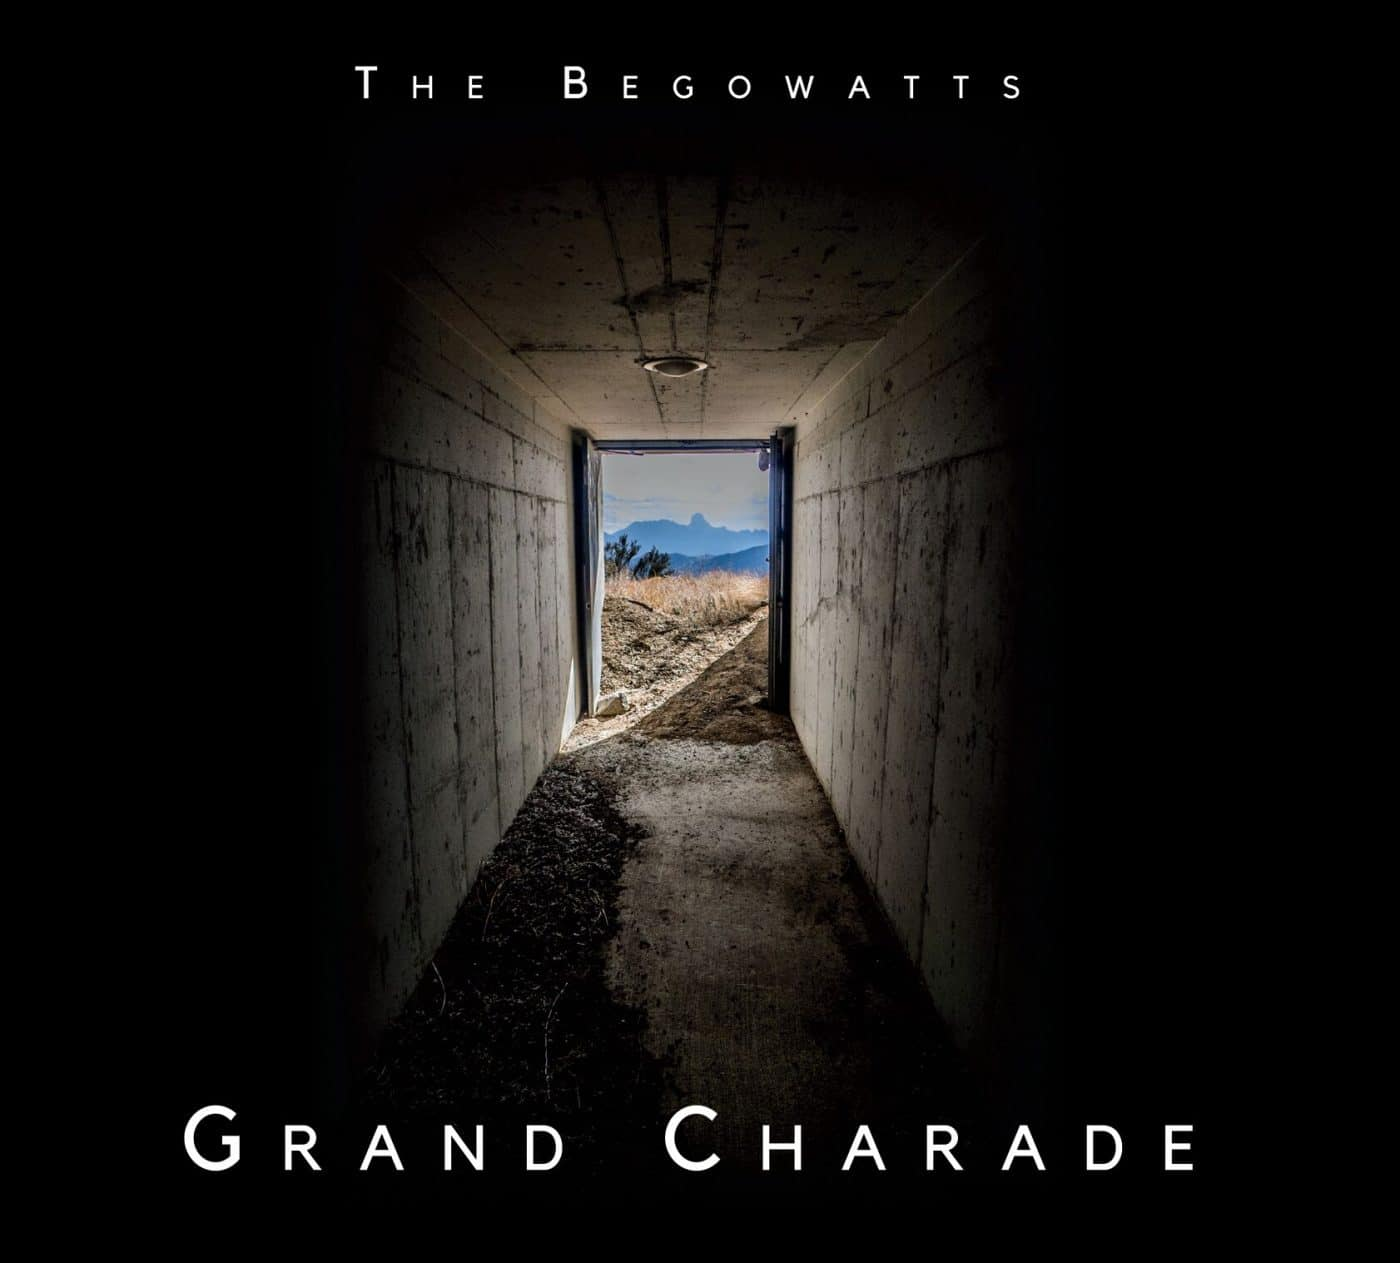 The Begowatts - Grande Charade EP | Reactions | LIVING LIFE FEARLESS